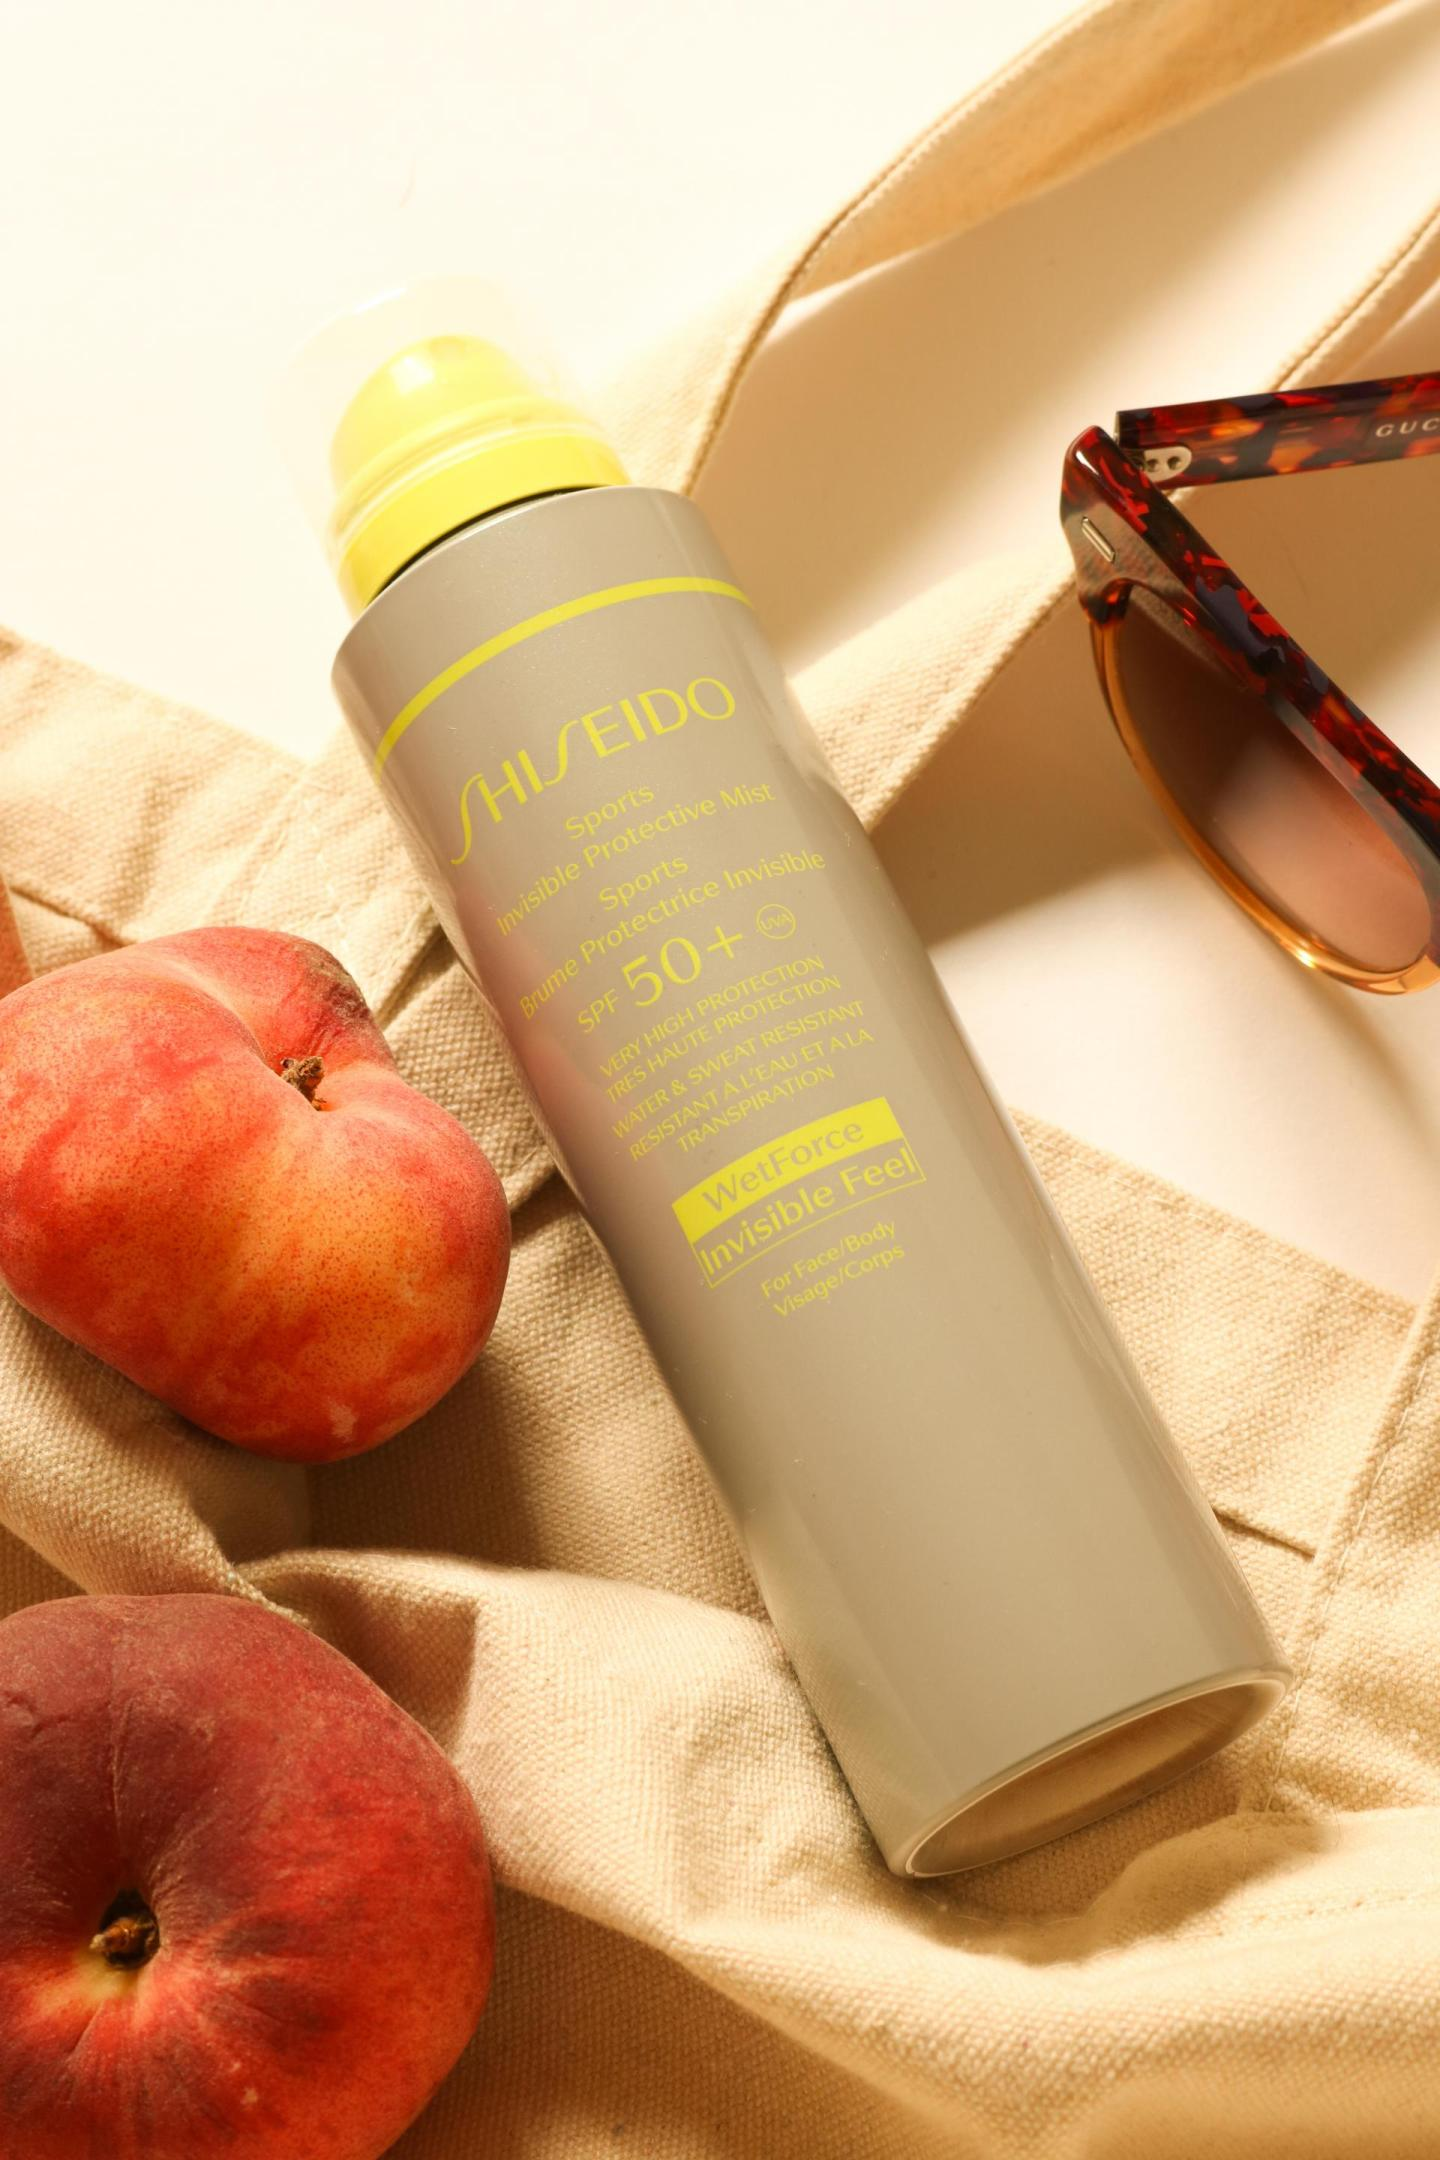 bag spill with the Sports Invisible Protective Mist SPF50+